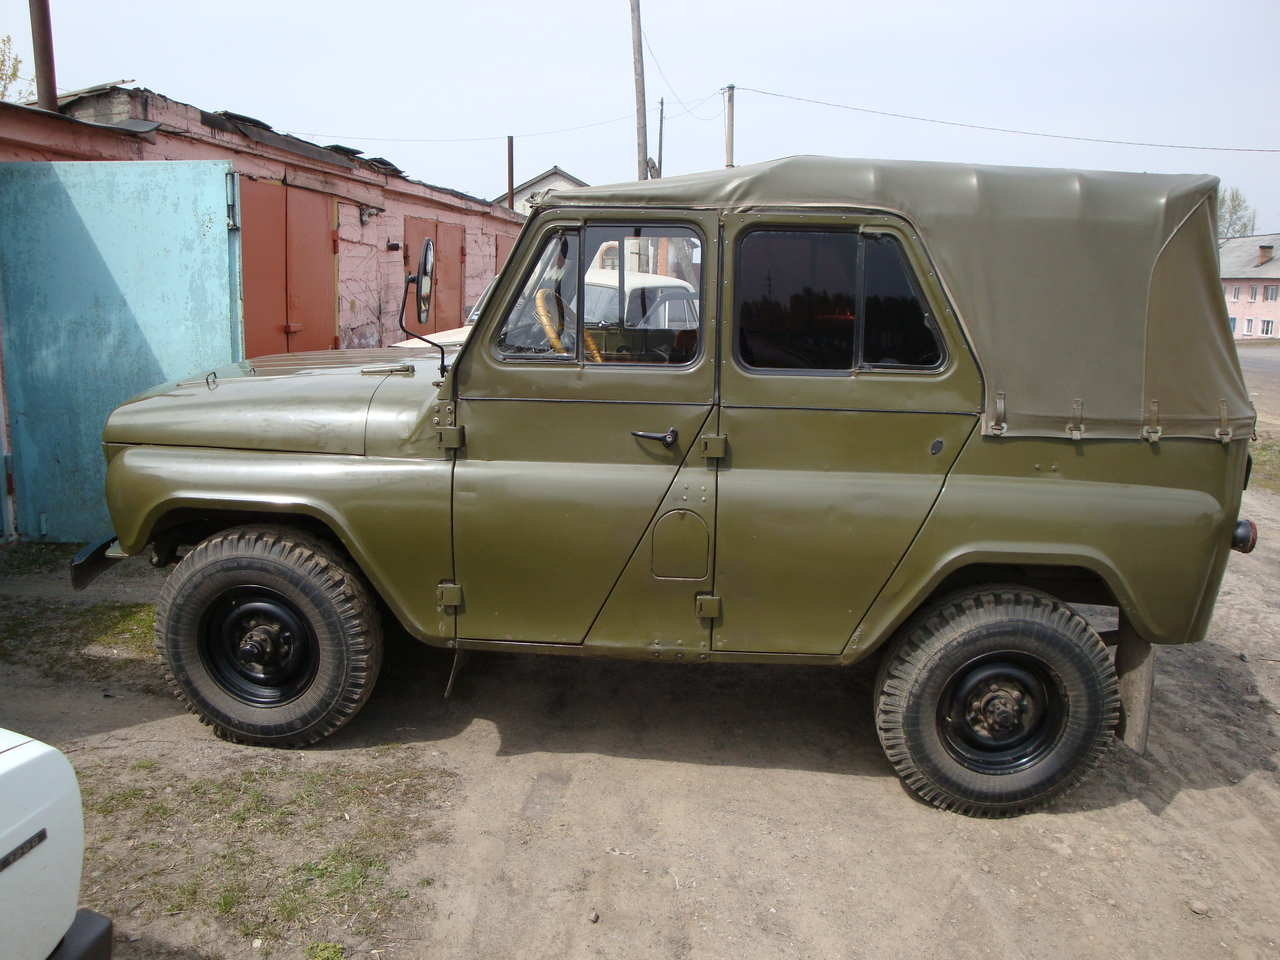 used 1973 uaz 469 photos 1500cc gasoline manual for sale. Black Bedroom Furniture Sets. Home Design Ideas